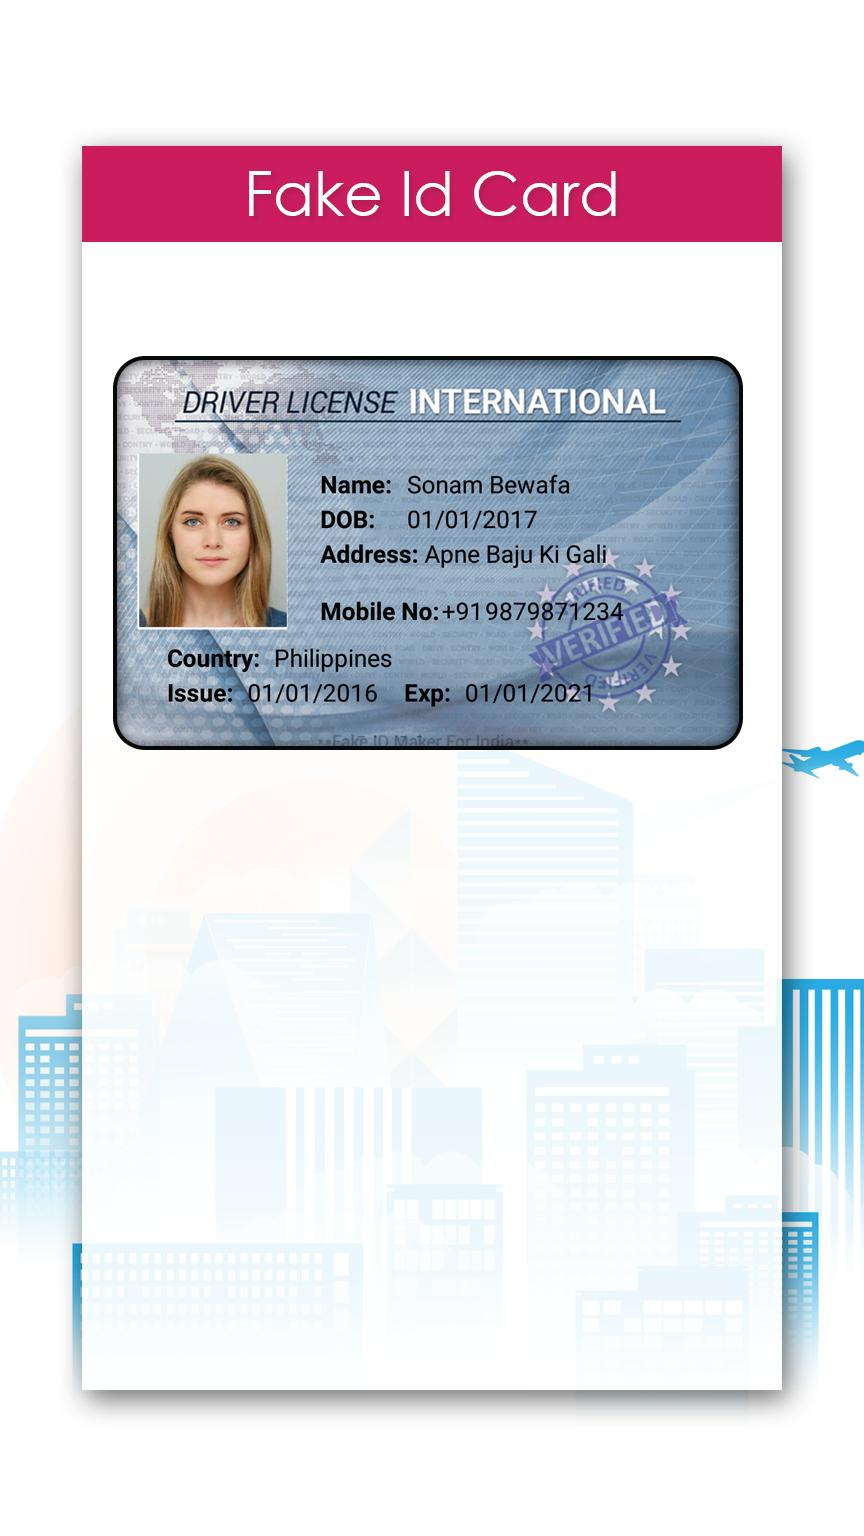 Fake ID Card Maker for Android - APK Download